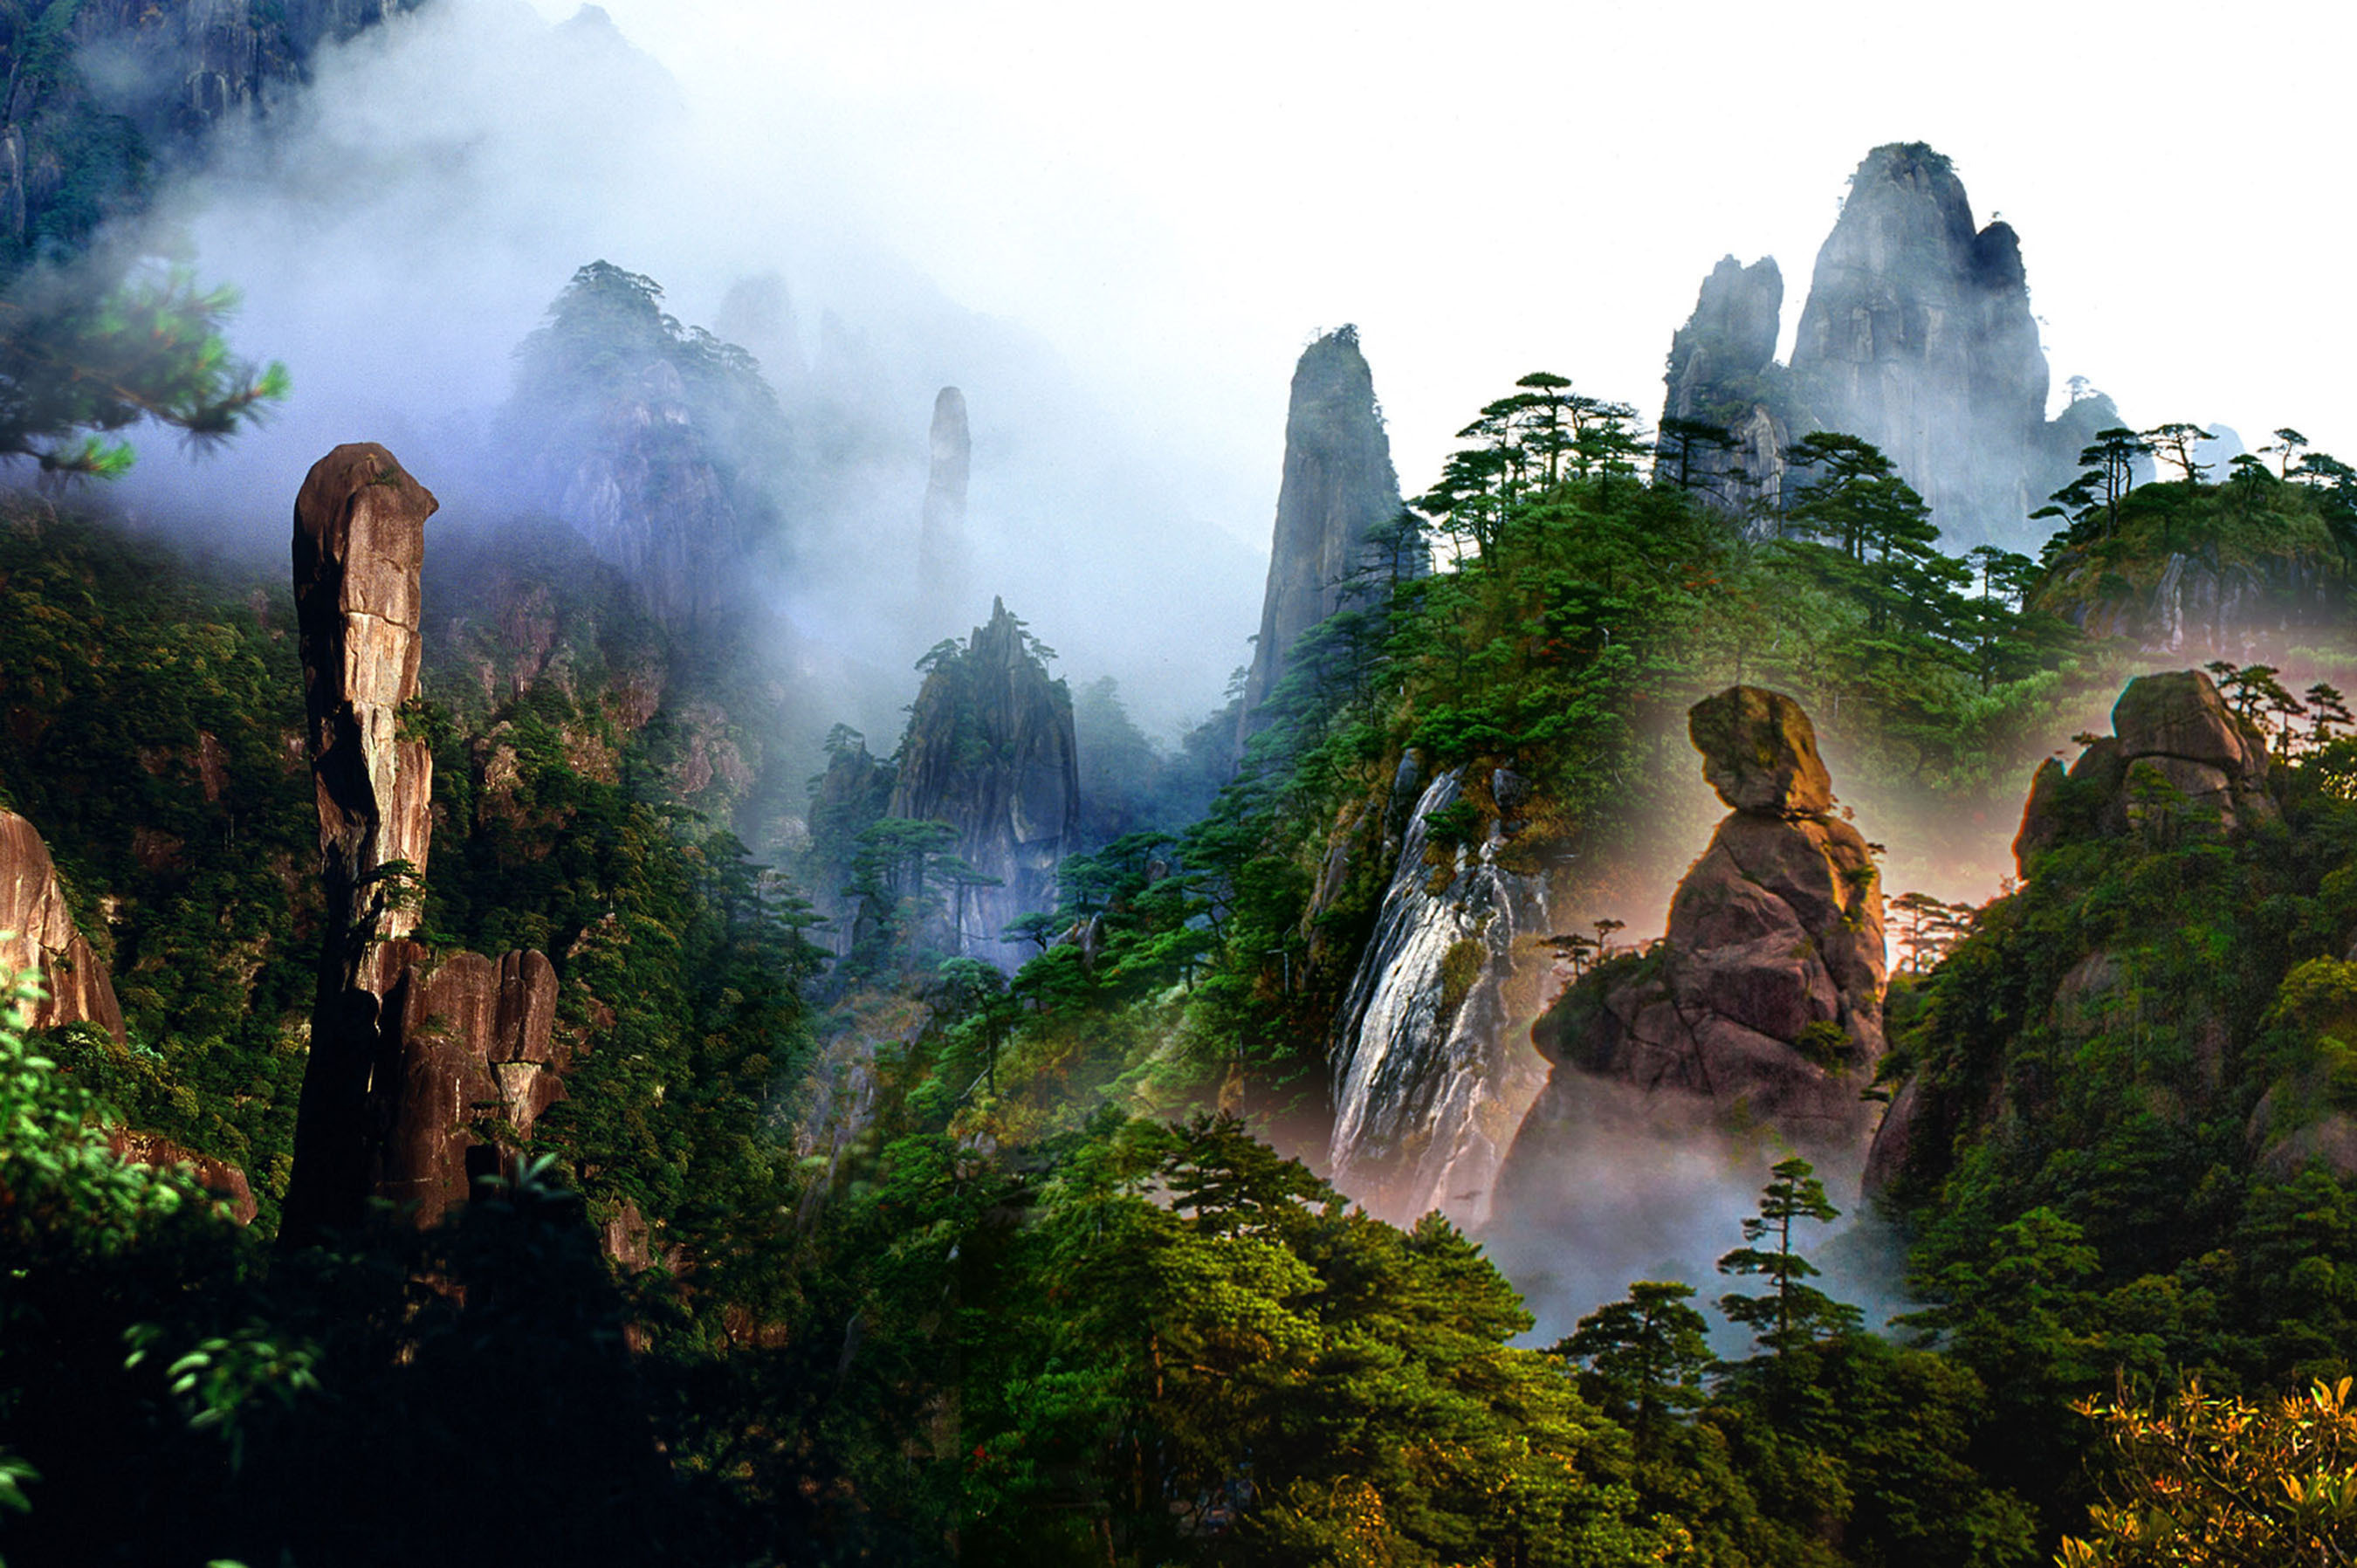 Sanqing Mountain, China.